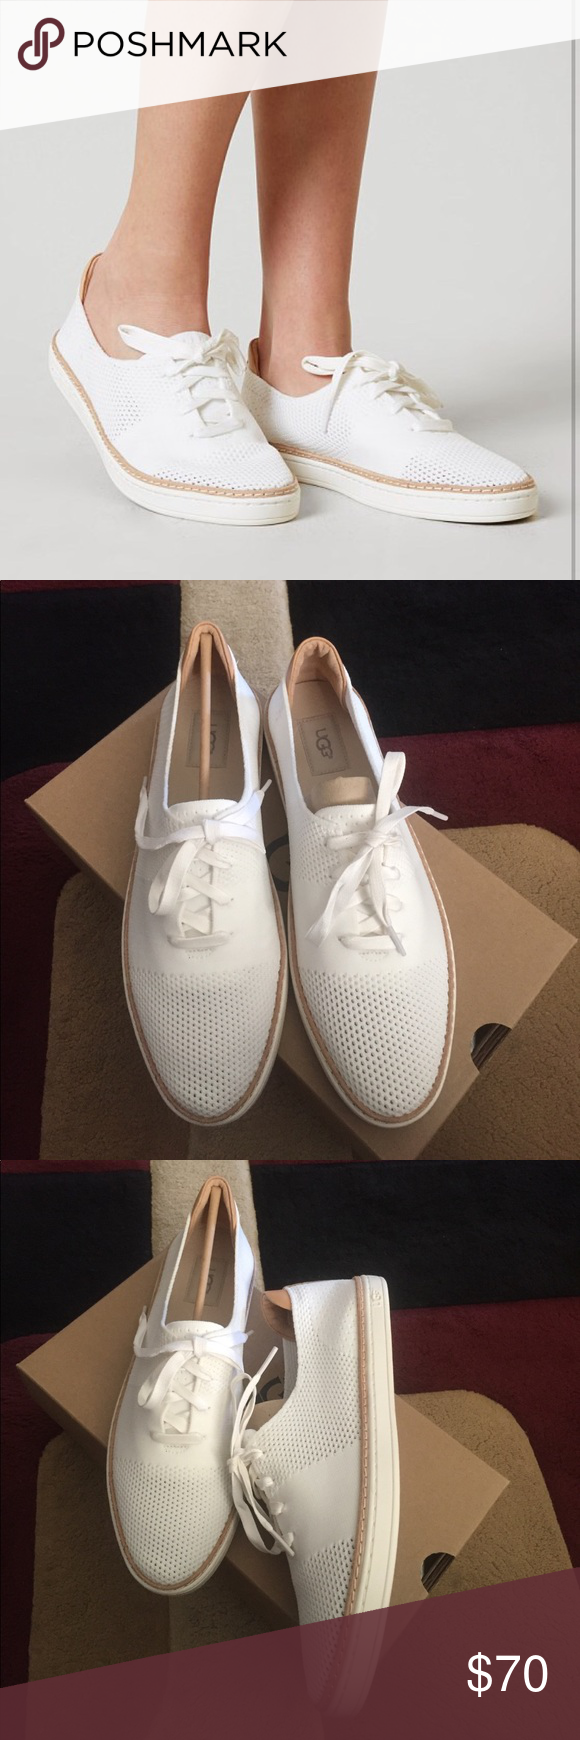 761e6e63ce2 NEW UGG PINKETT WHITE Model: 1016754 Made from a soft spring knit ...